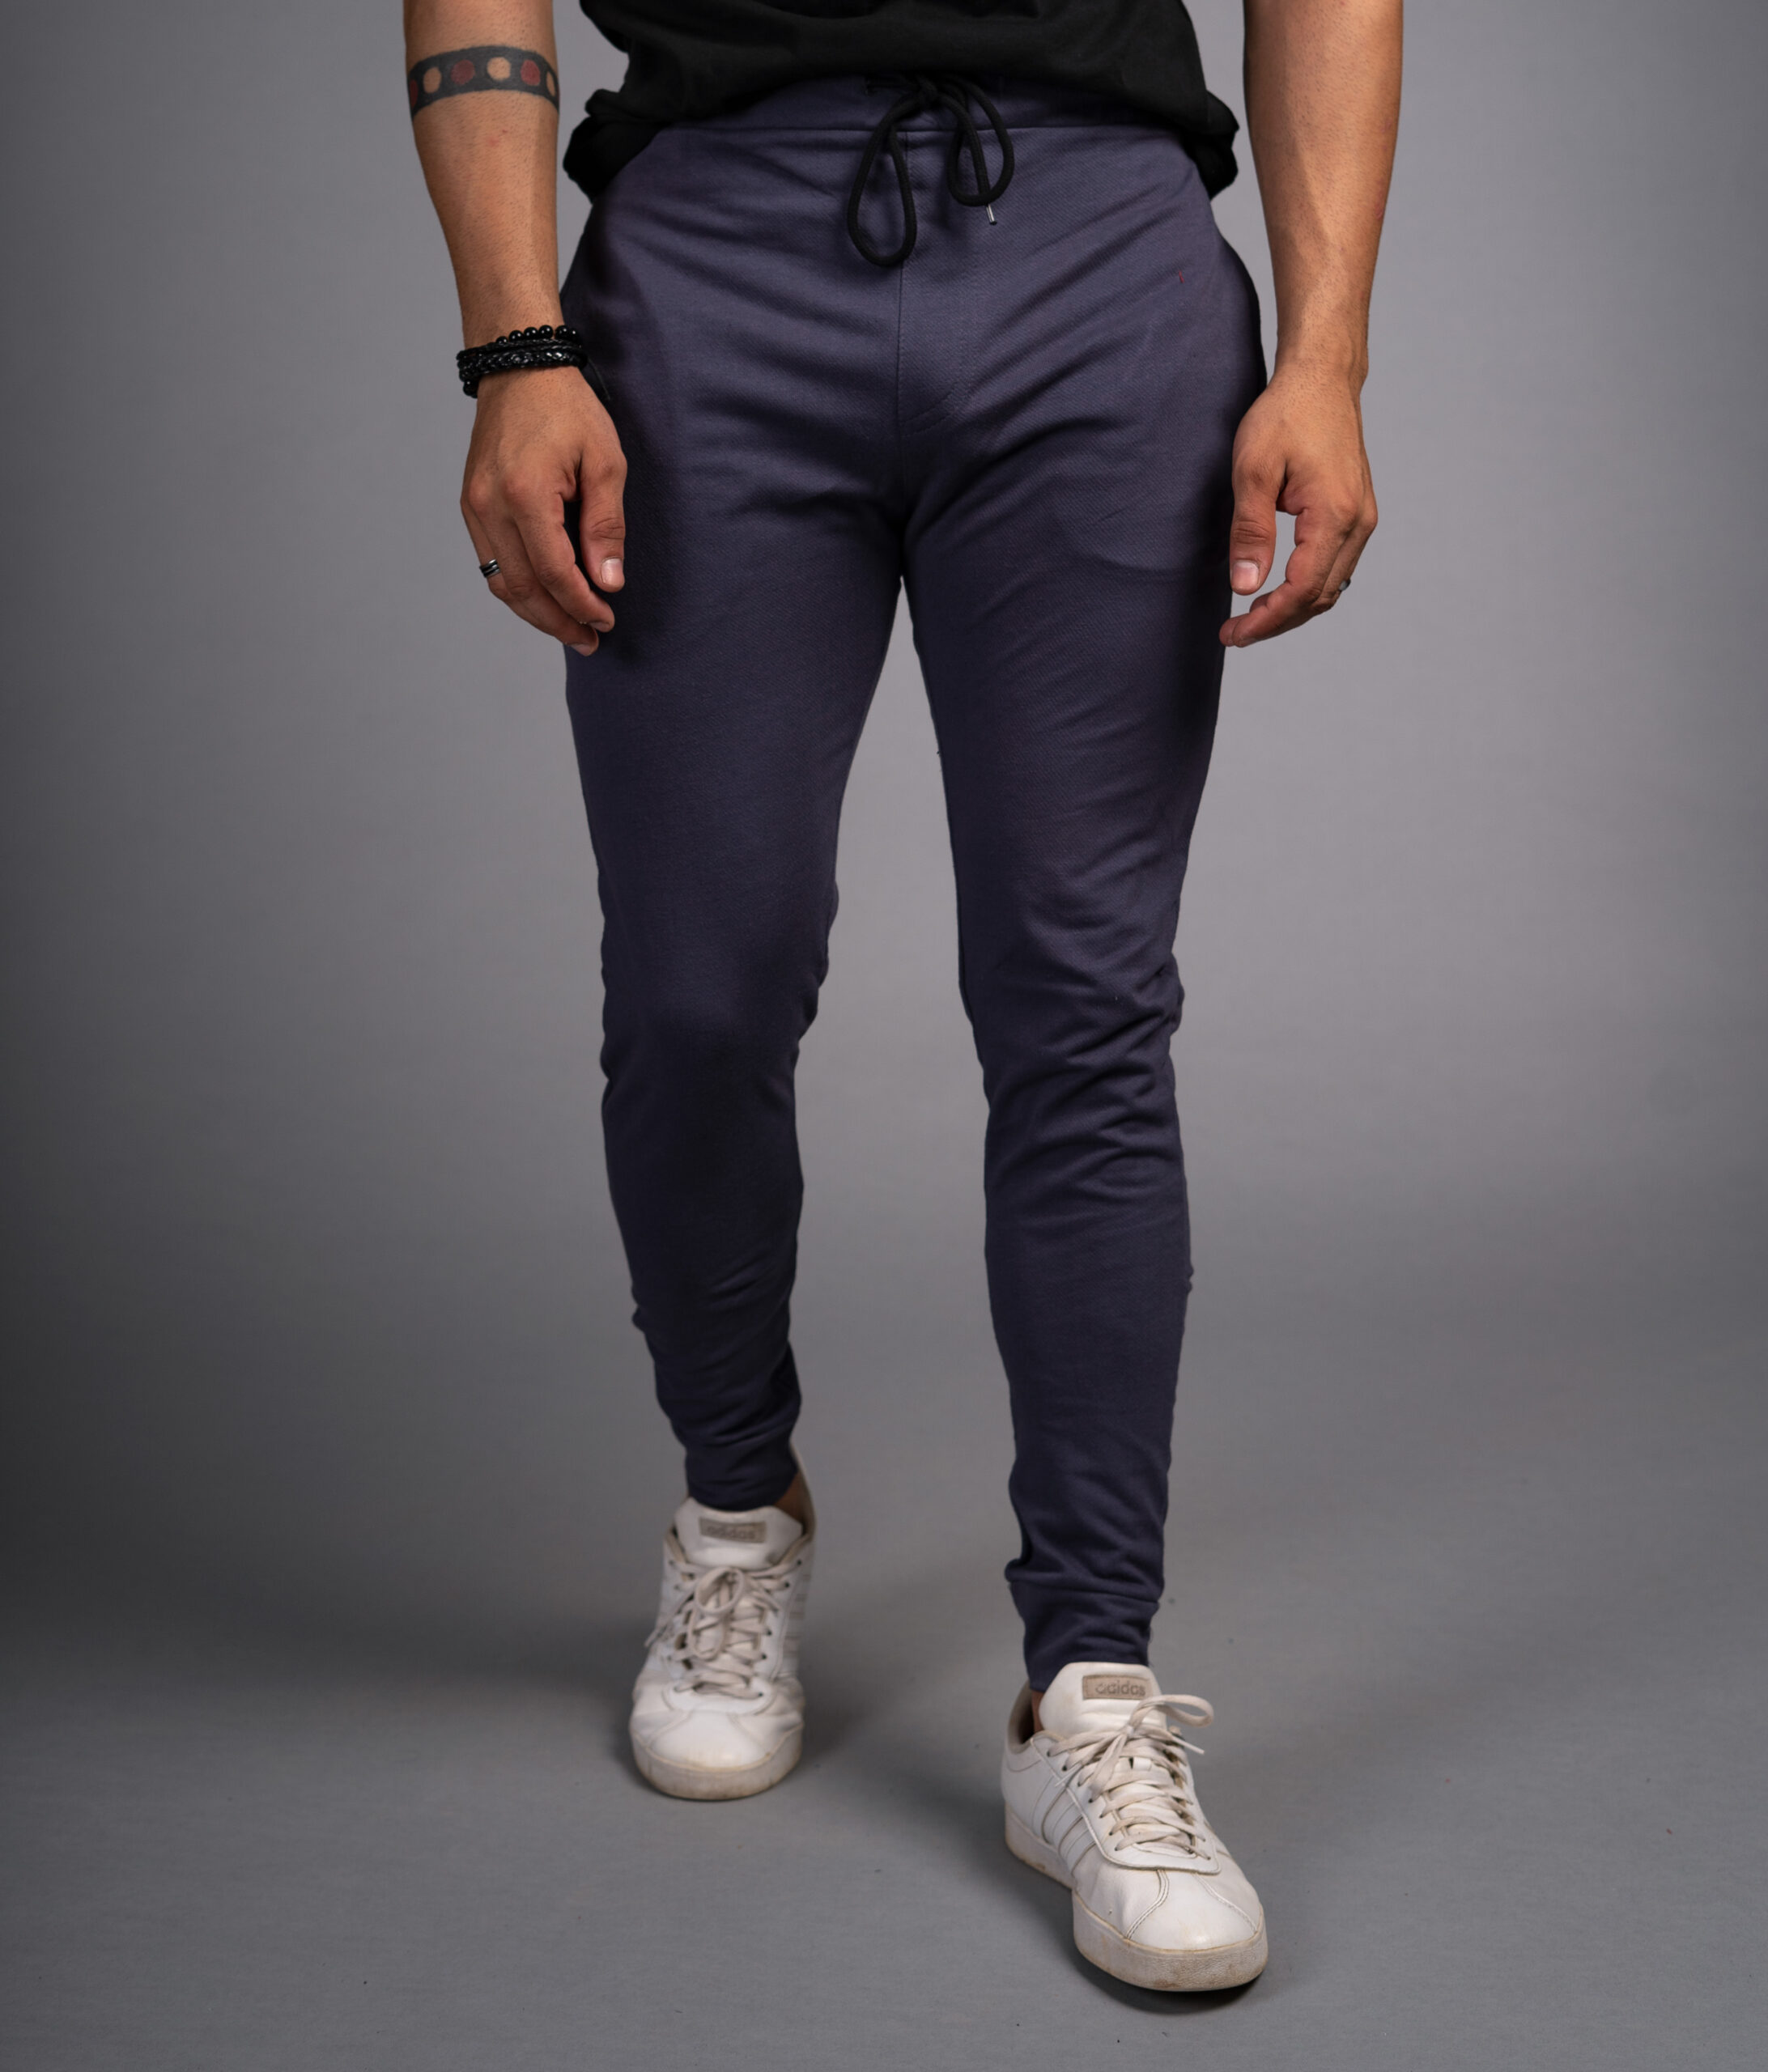 Blue Trouser For Men Narrow Fitting Perfect For Gym